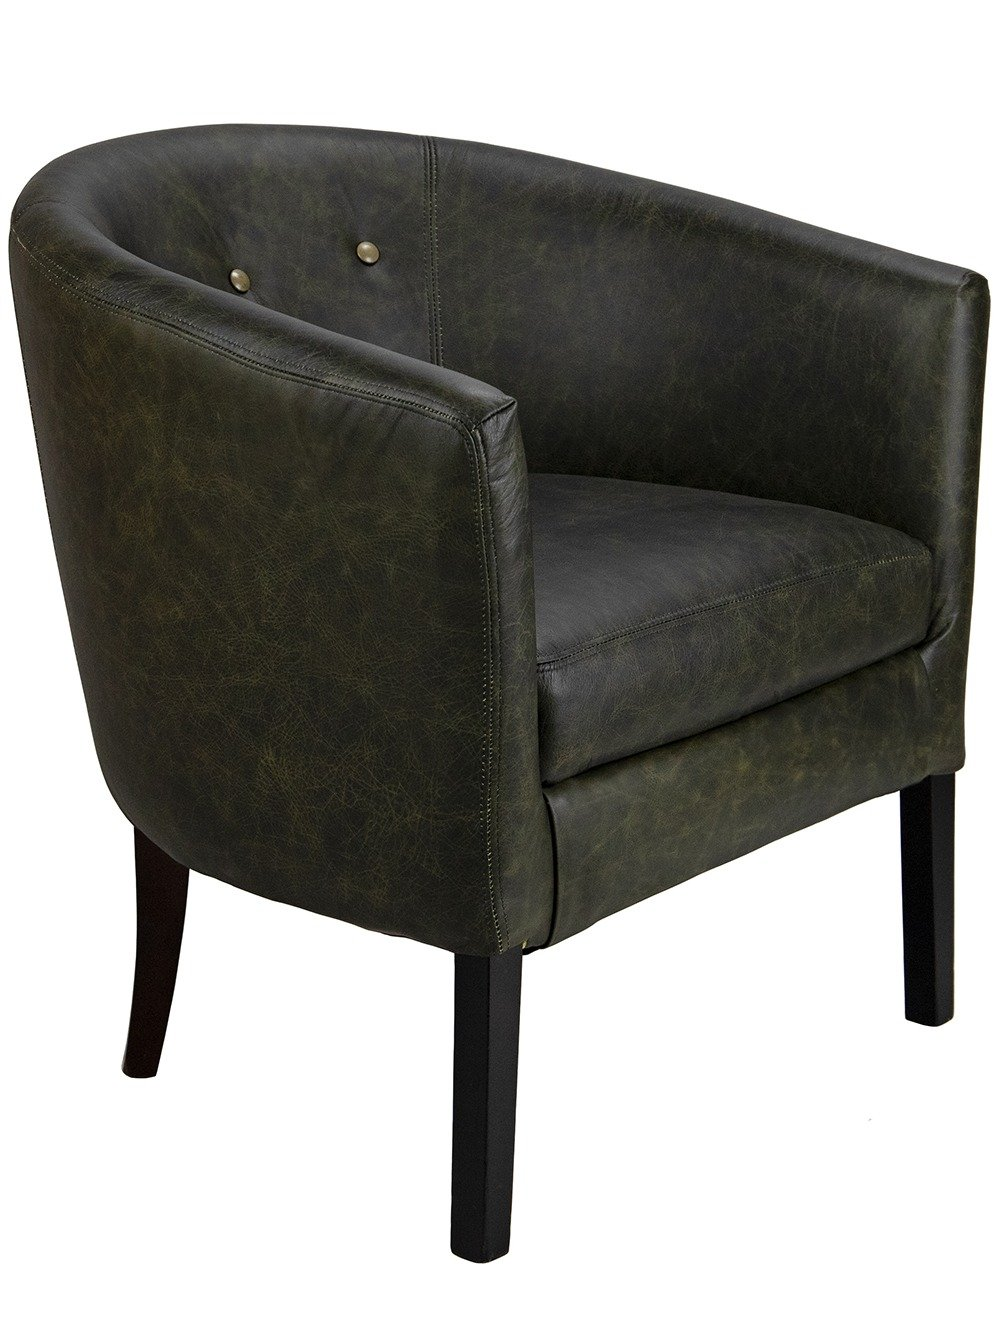 Ambassador Tub Chair with shallow button detail from a 45 degree angle